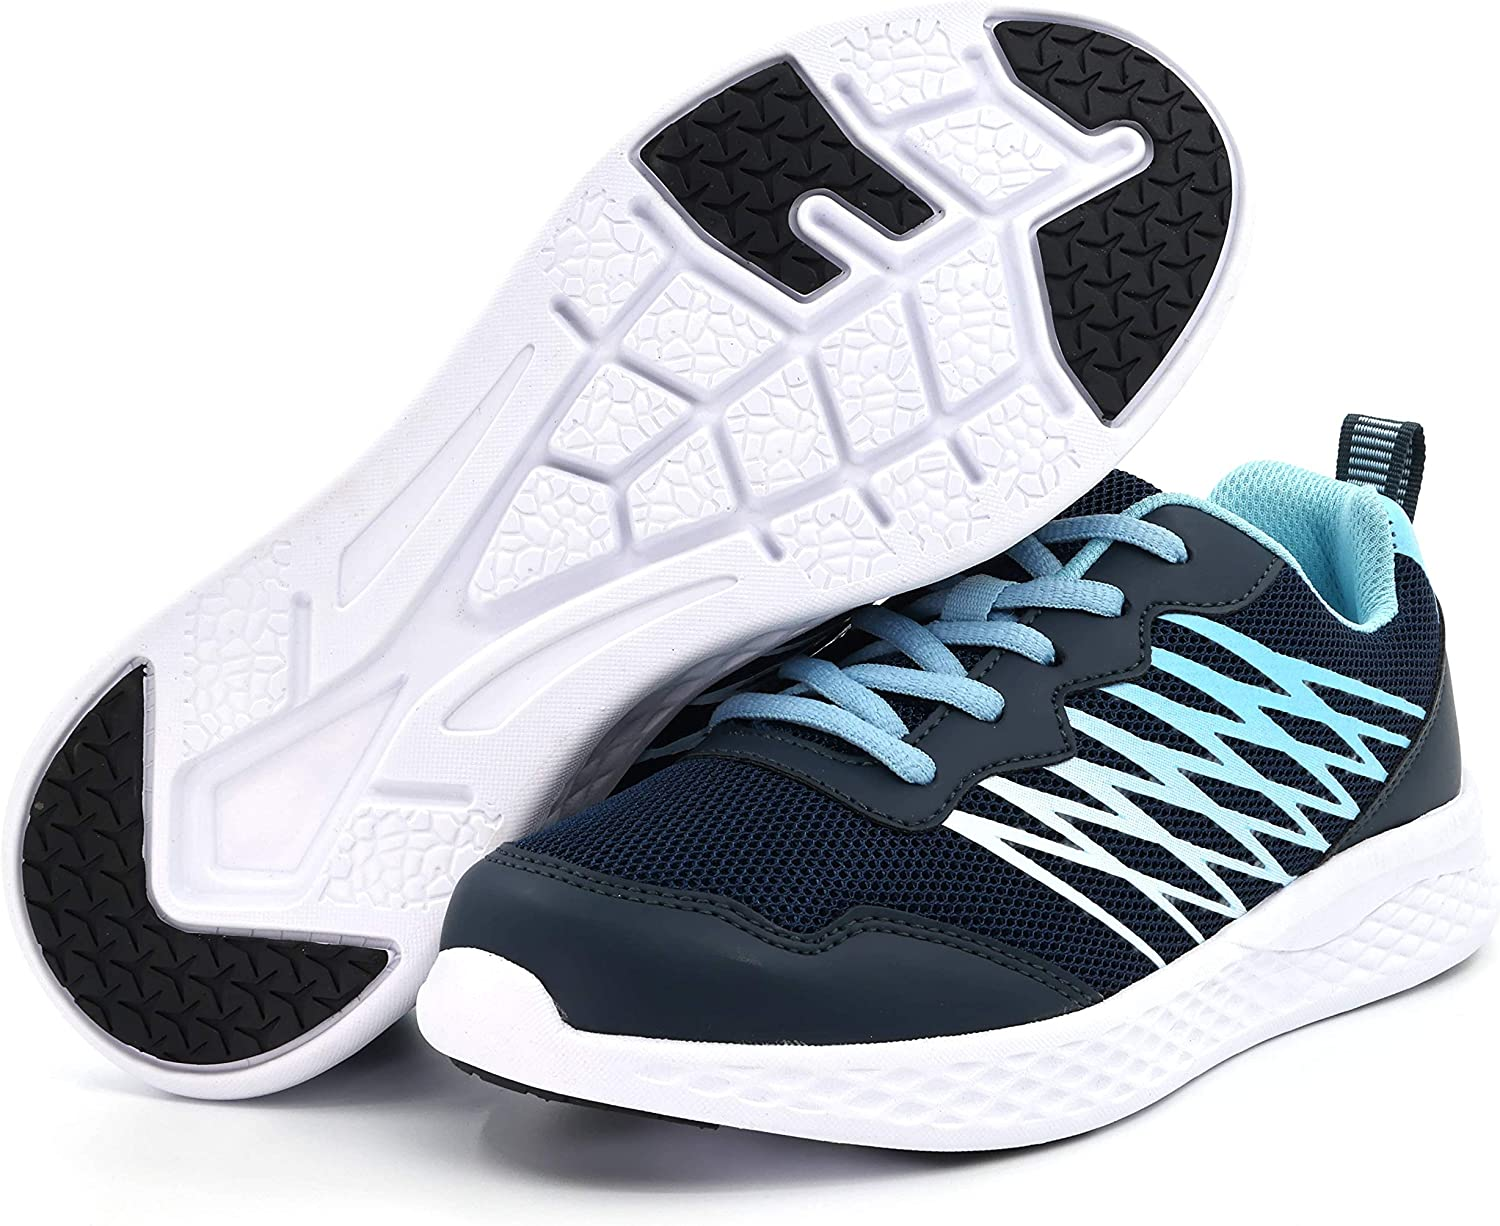 Skywheel Boys Girls Athletic Running Sneakers Kids Lightweight Lace Up Sports Tennis Shoes